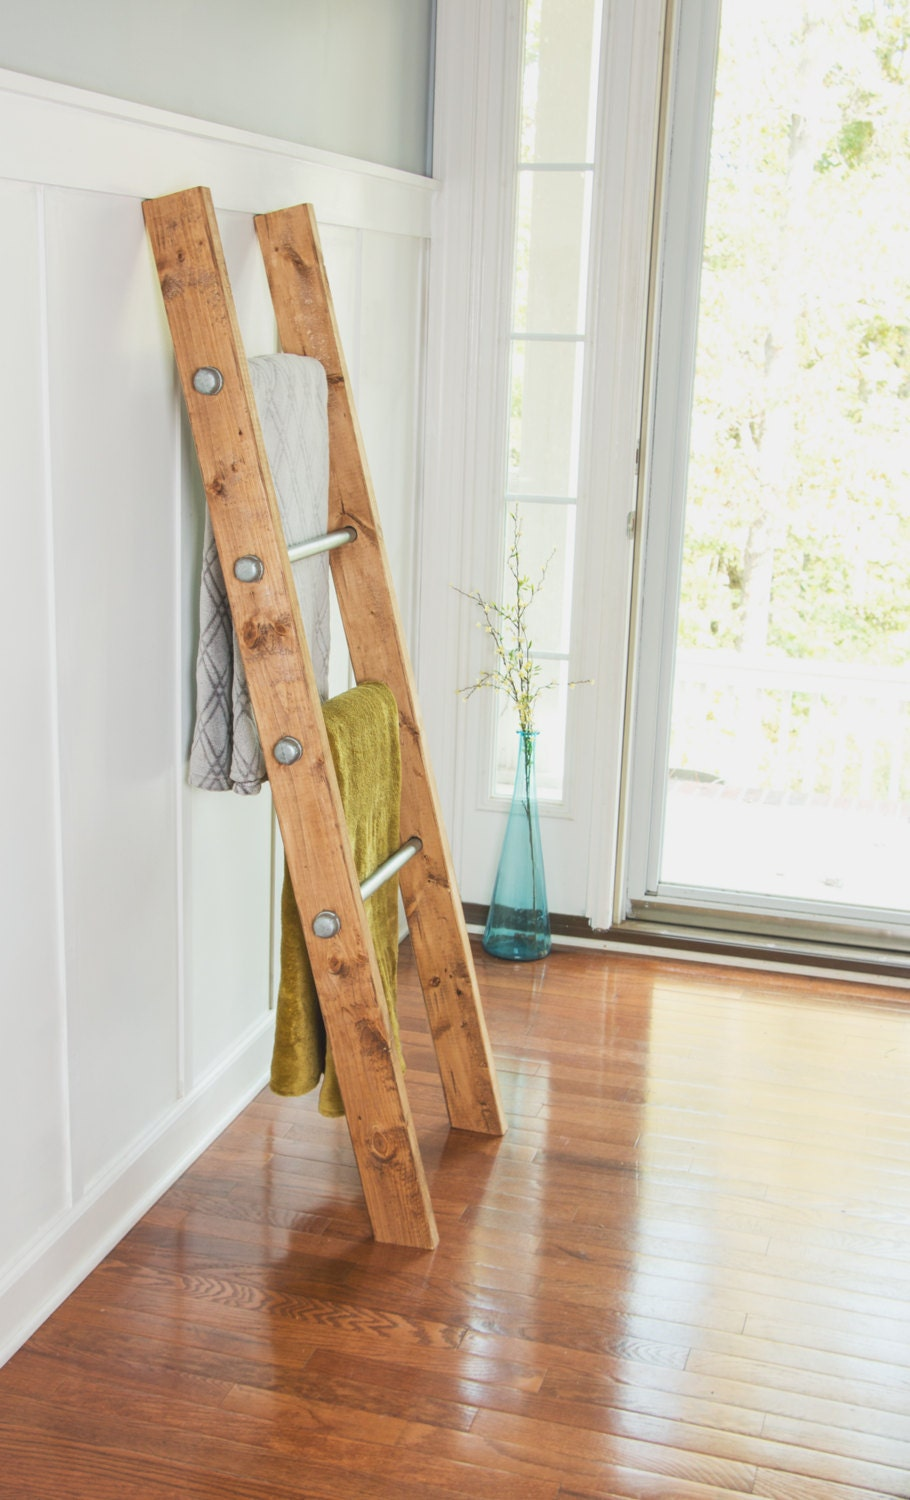 Wooden Ladder Rustic Blanket Bathroom Storage